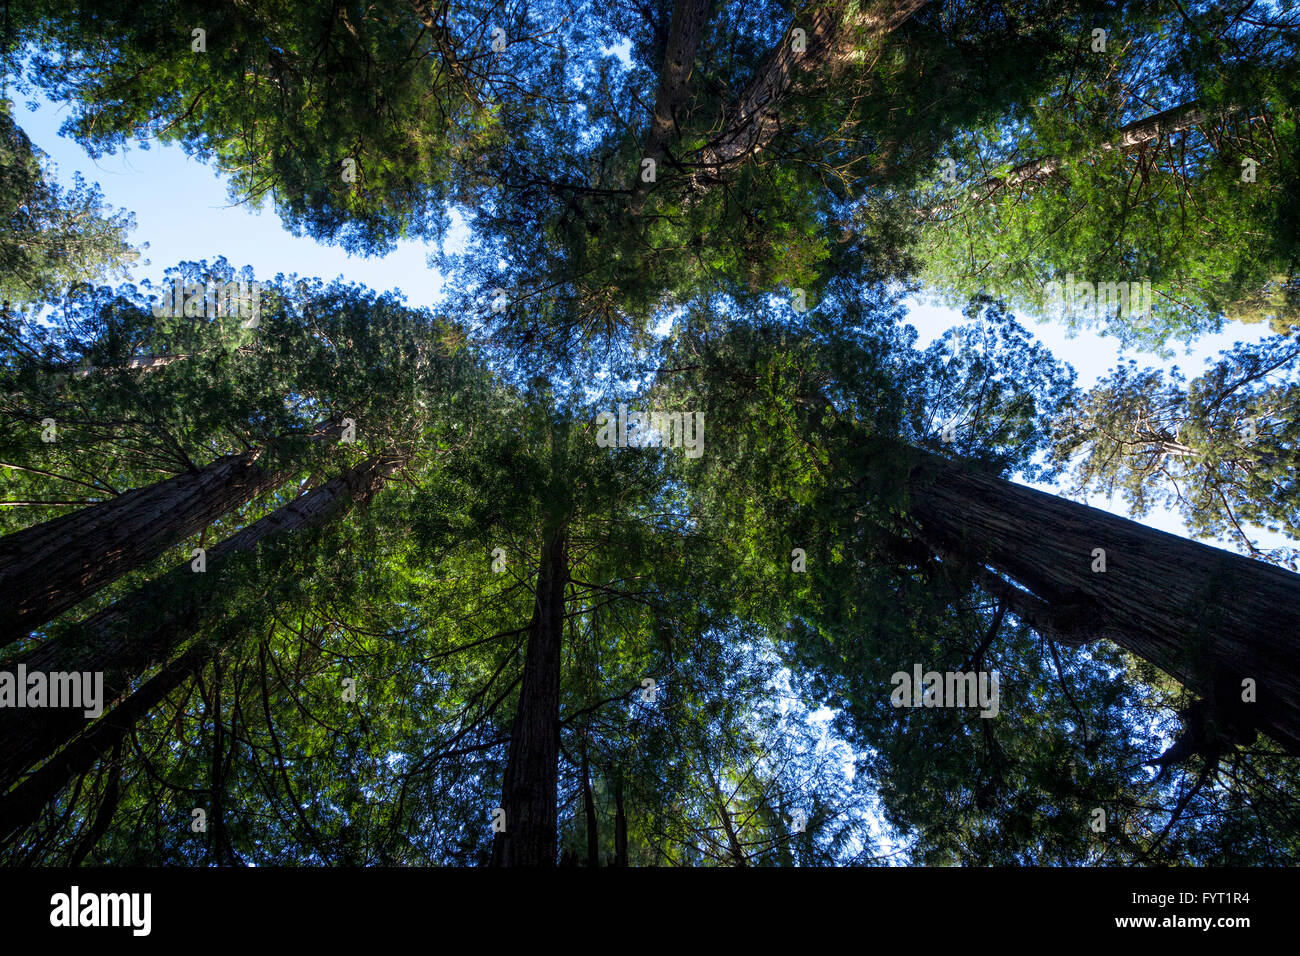 Redwood trees reach for the sky at prairie creek redwoods state park in Northern California near the town of Orick. - Stock Image